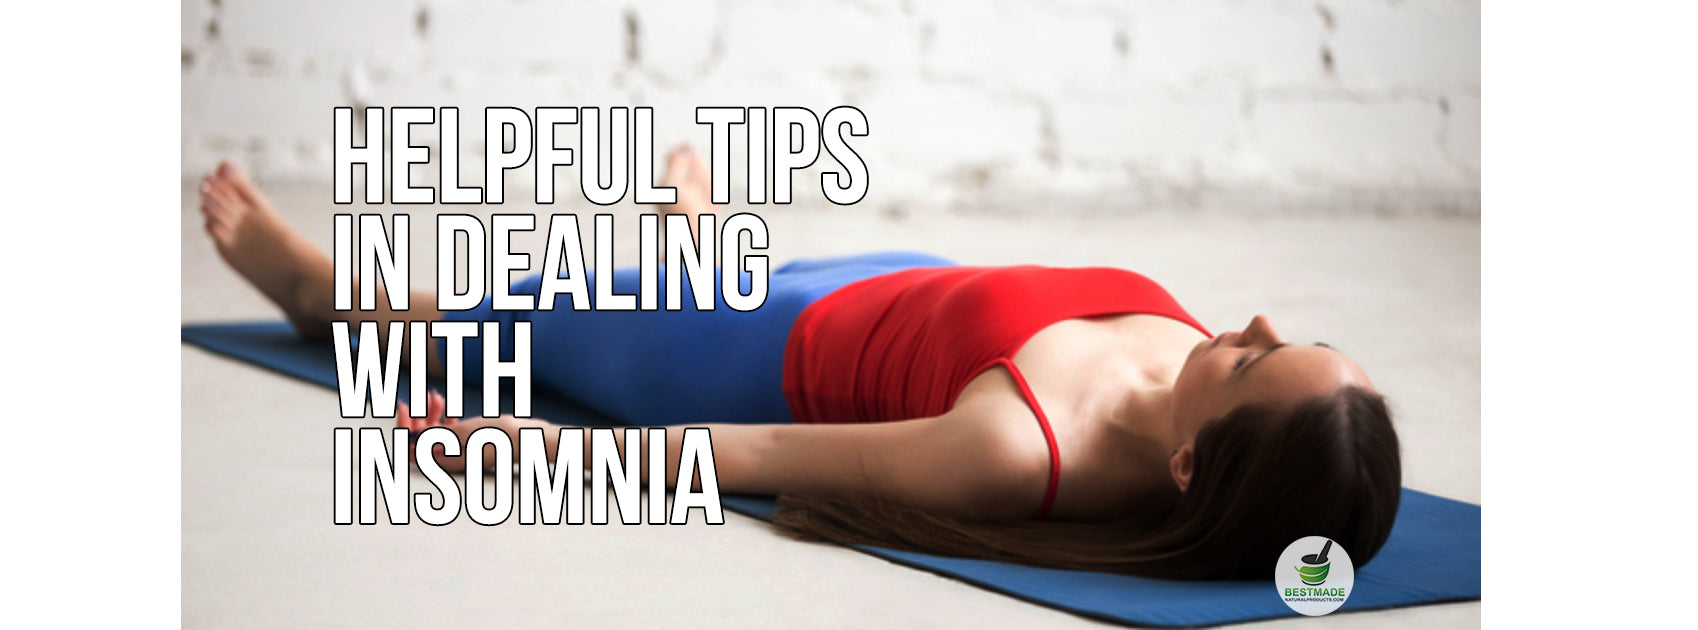 Helpful Tips In Dealing With Insomnia